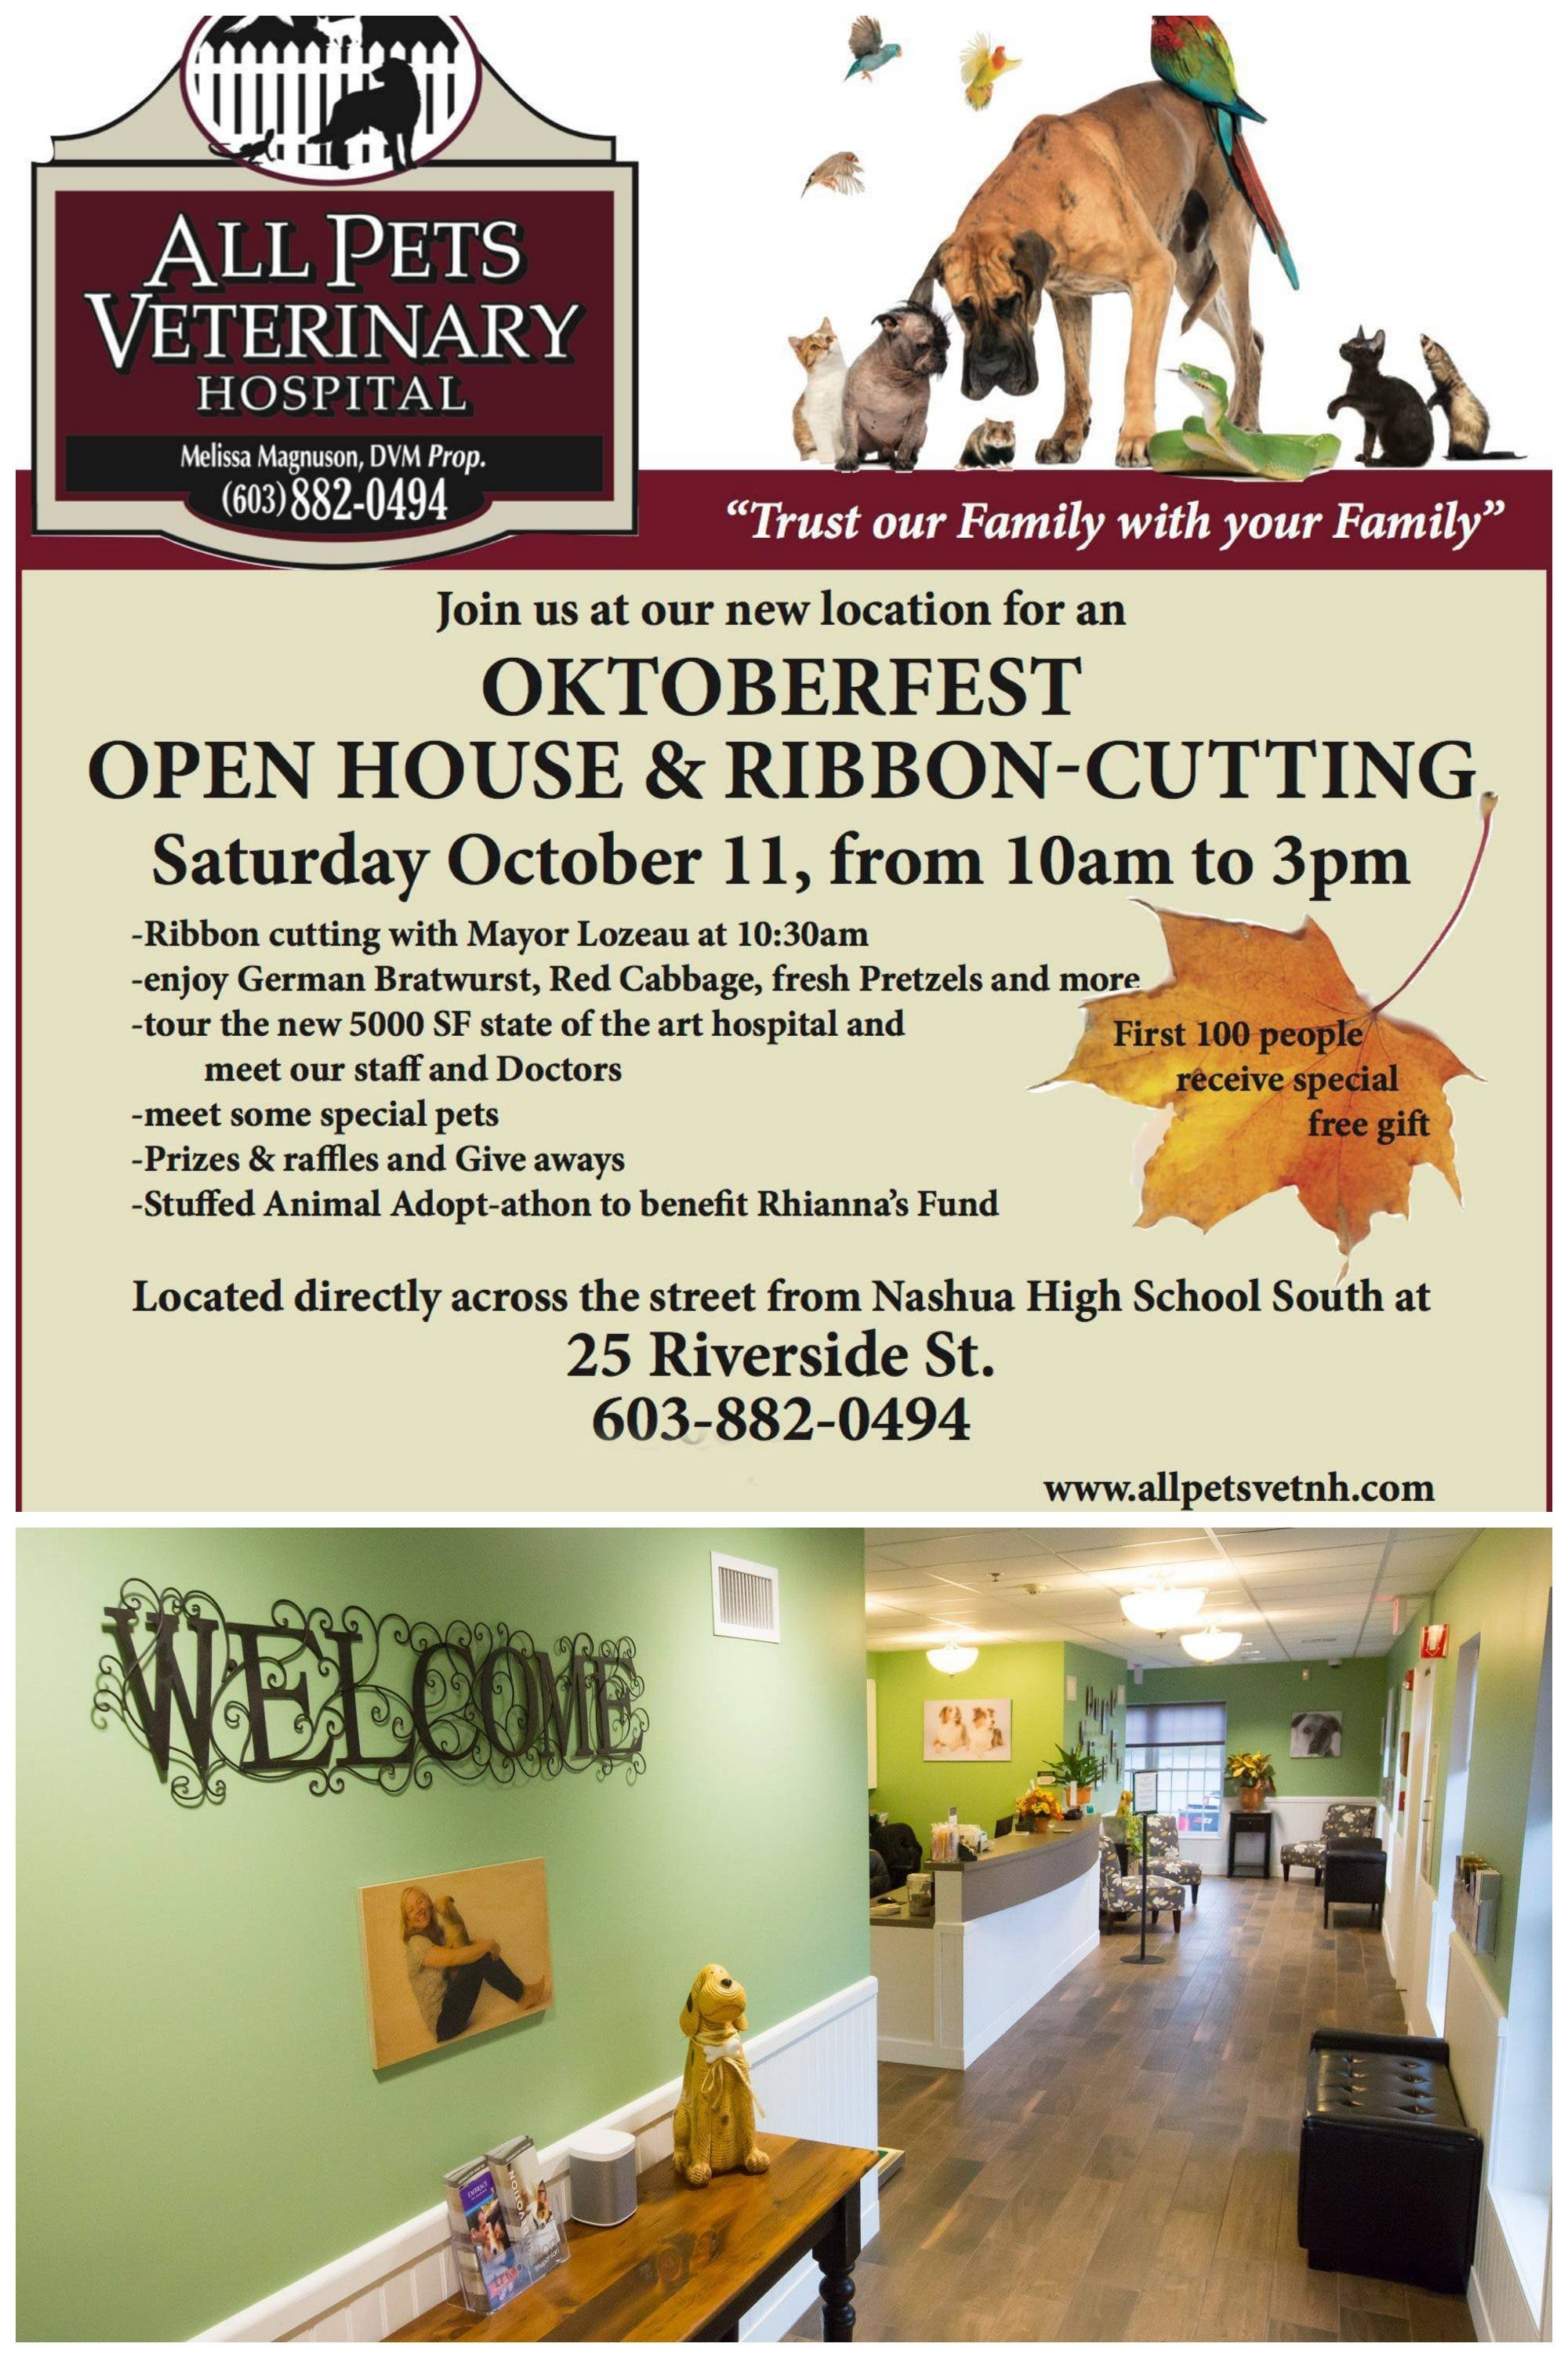 All Pets Veterinary Hospital To Host Grand Opening Oktoberfest